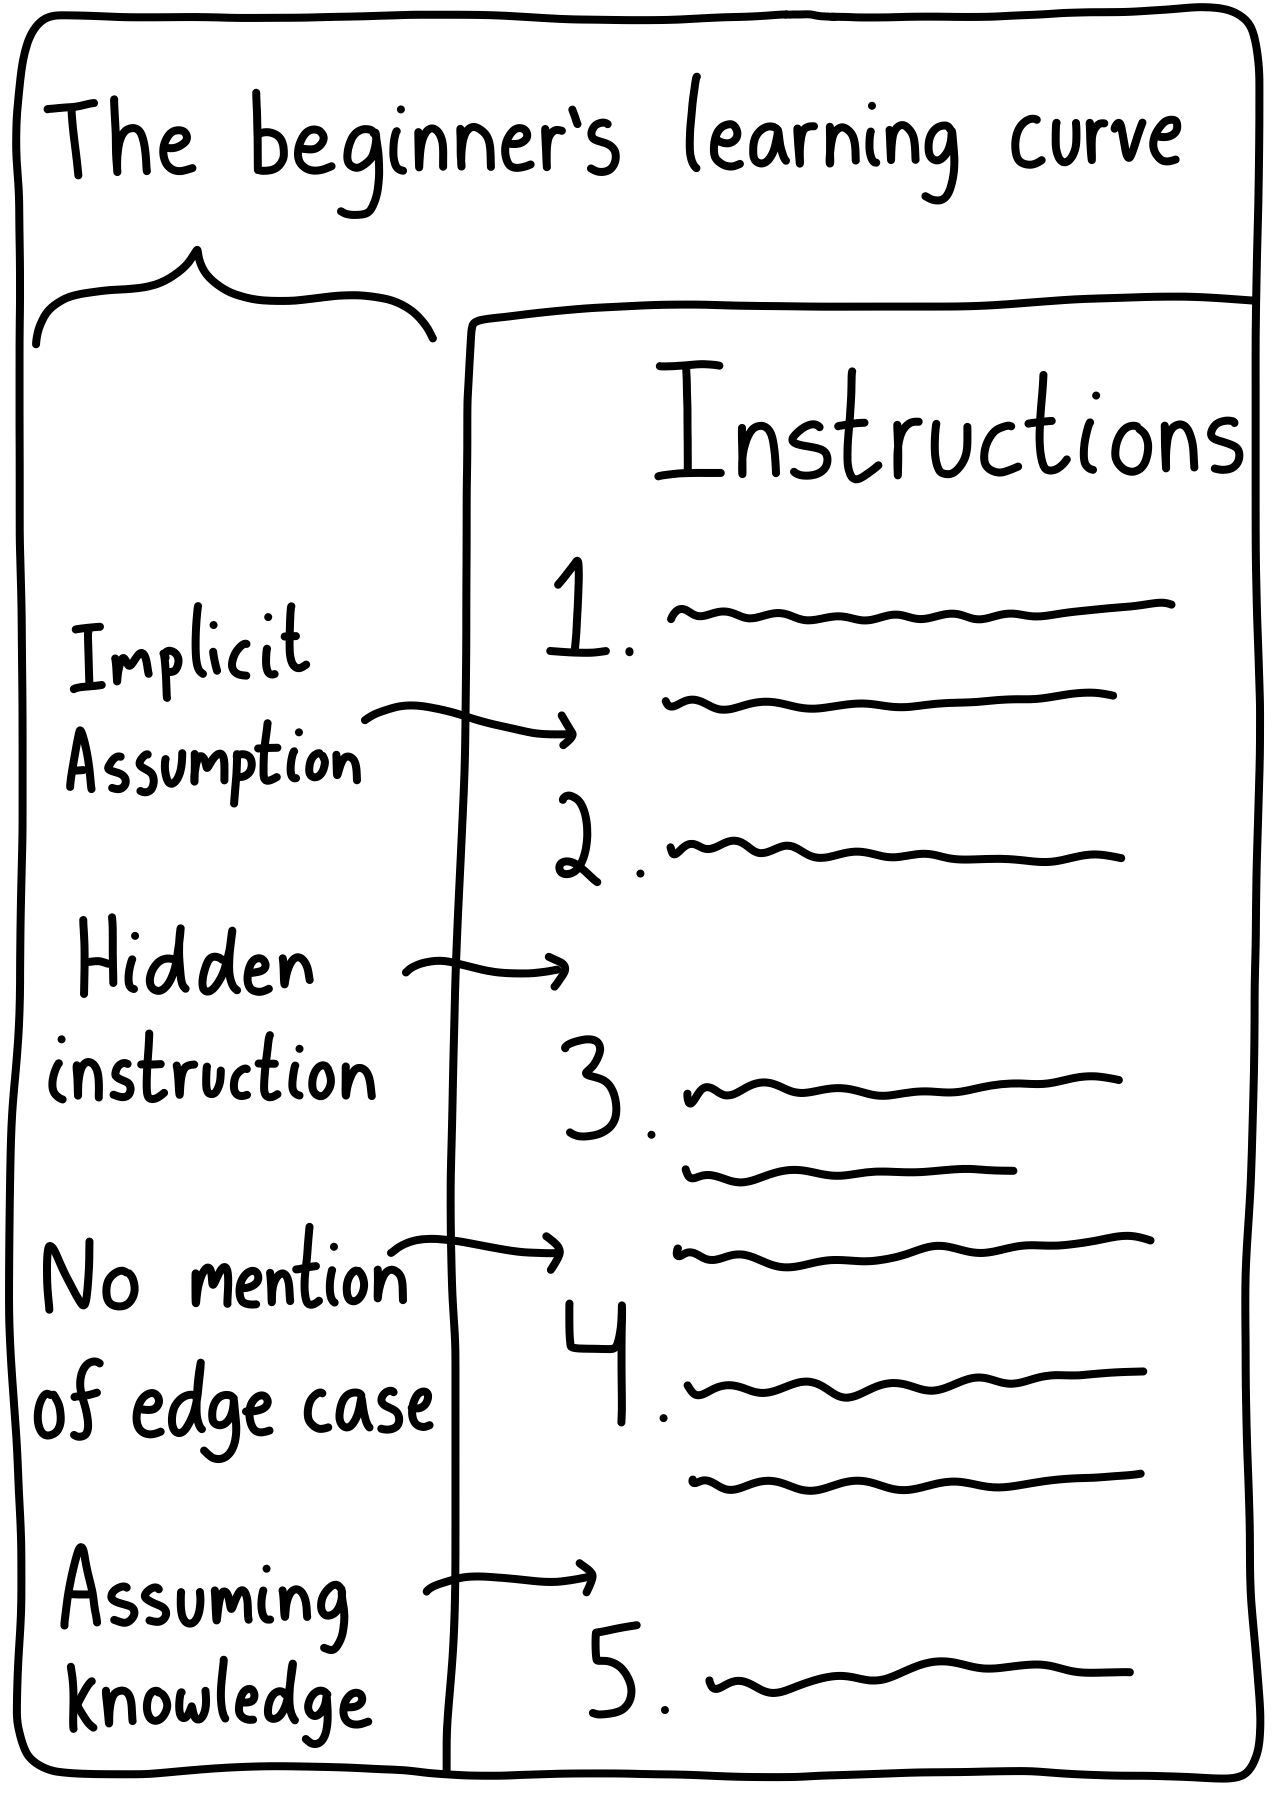 A list of instructions, with comments on the side pointing out all of the hidden assumptions. There are a lot of them!